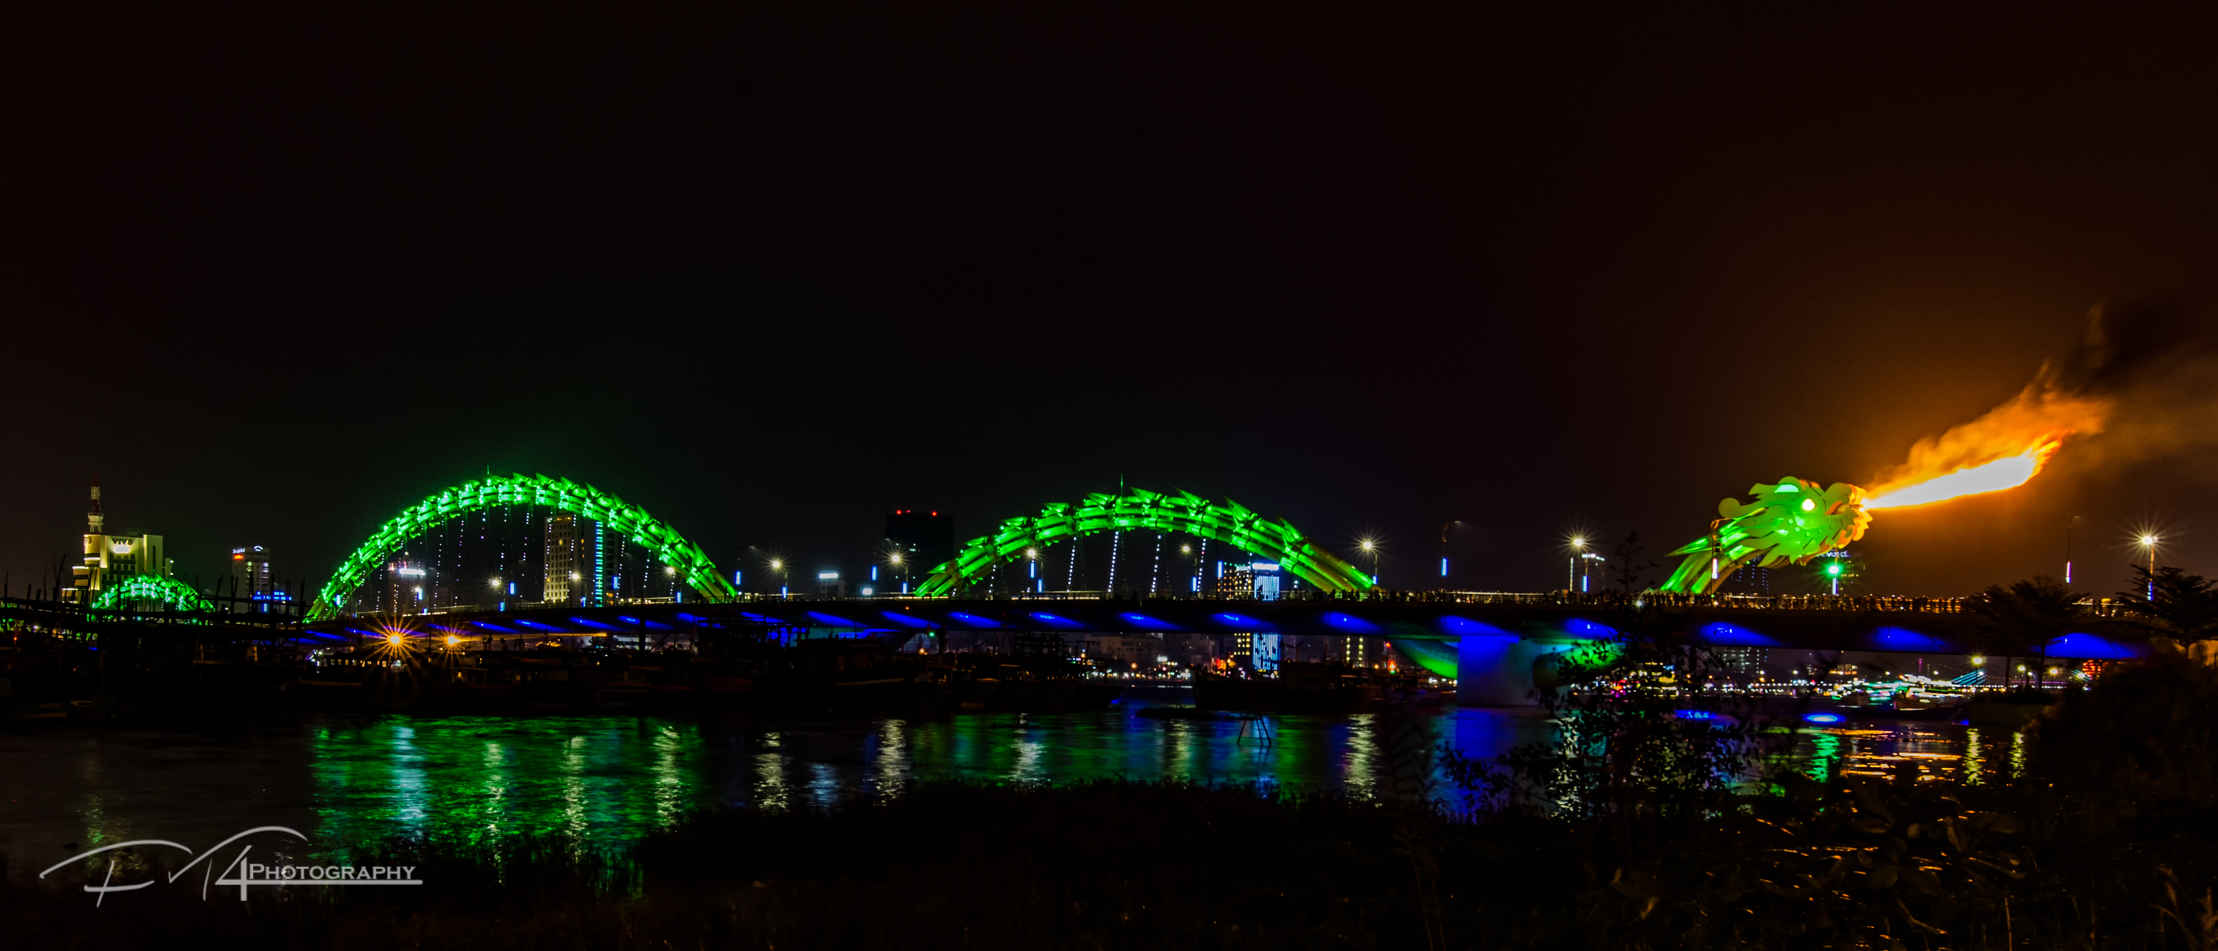 The Dragonbridge in Da Nang